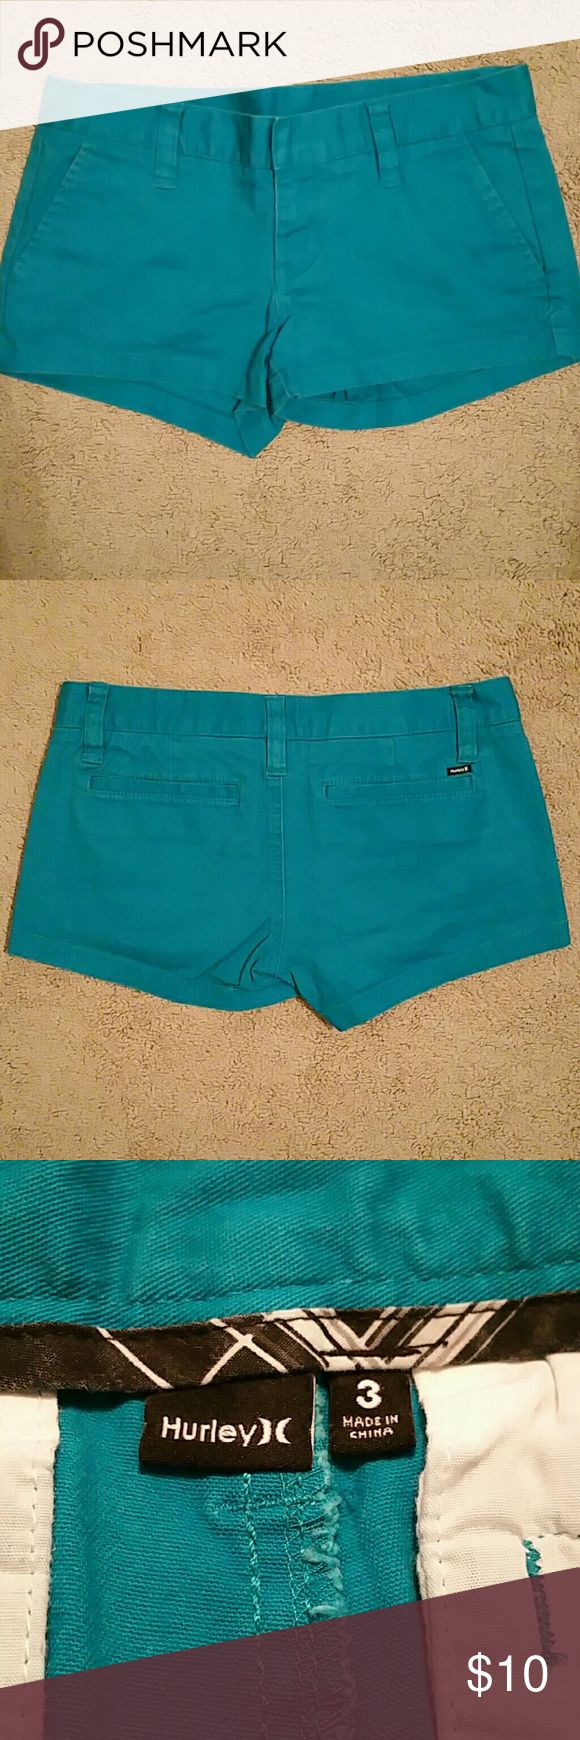 Hurley women's teal shorts Women's teal shorts Size 3 Hurley Shorts